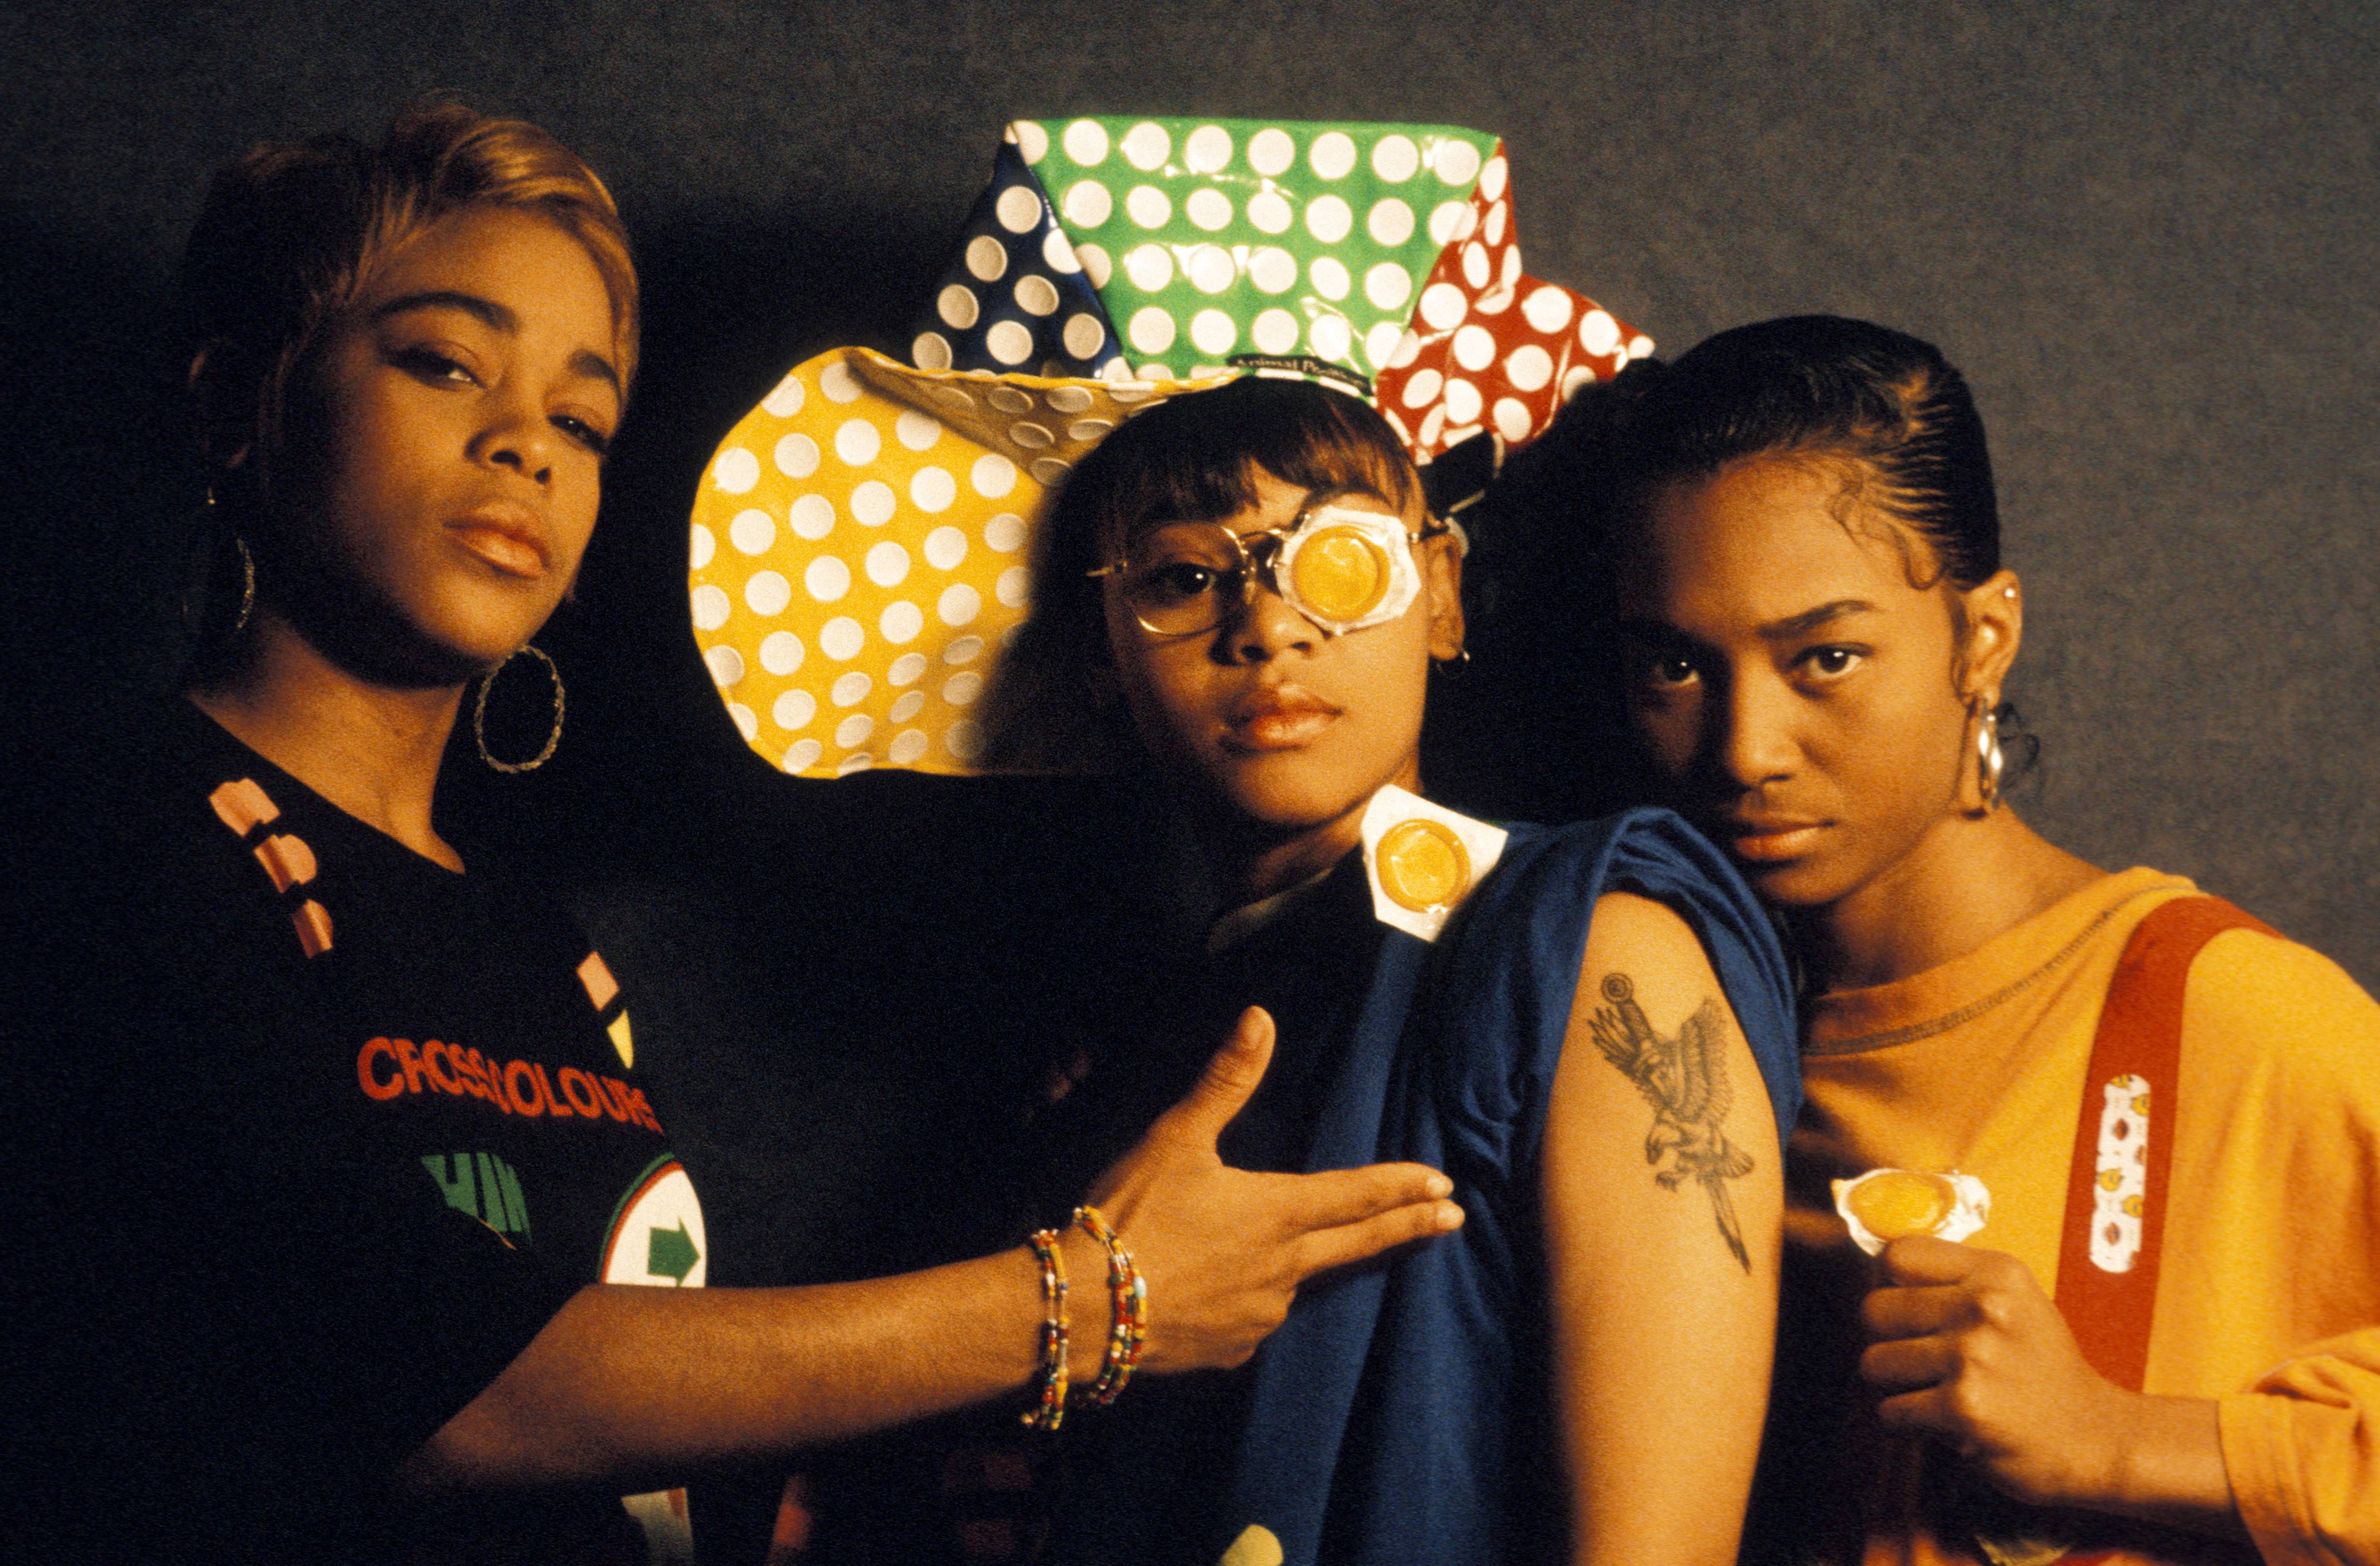 15 Groundbreaking Female Rappers Who Changed The Industry